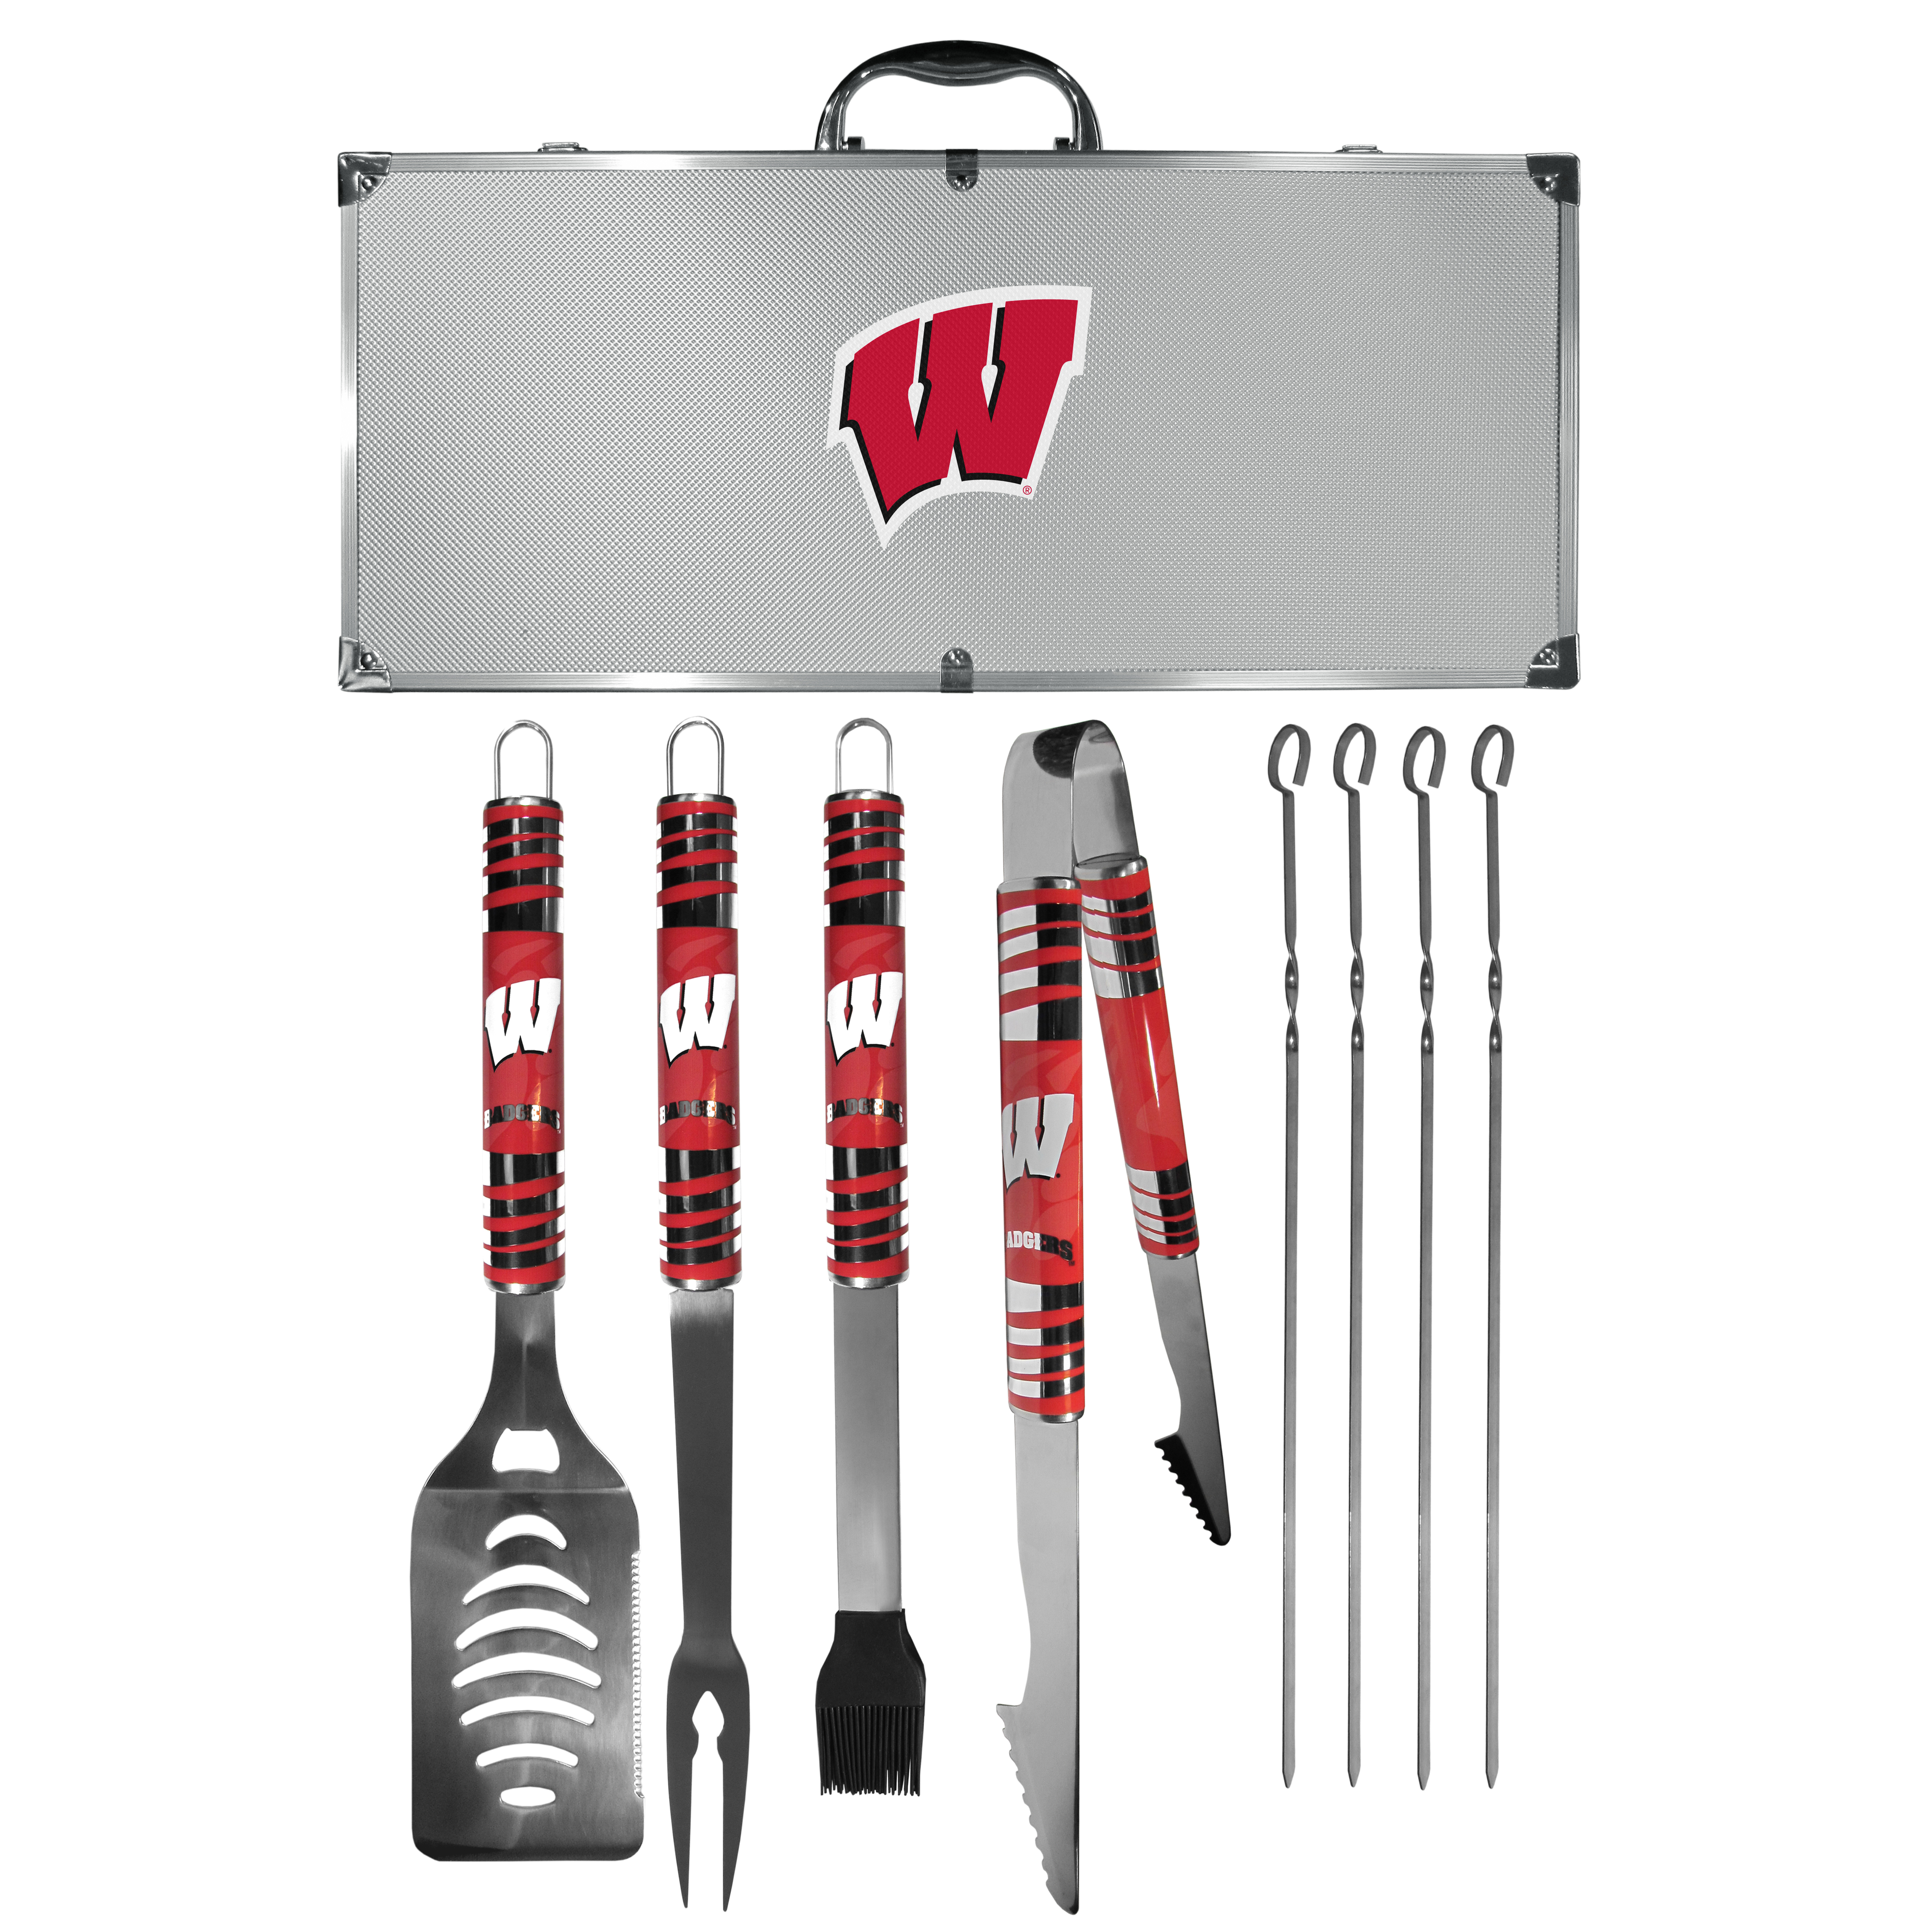 Wisconsin Badgers 8 pc Tailgater BBQ Set - This is the ultimate Wisconsin Badgers tailgate accessory! The high quality, 420 grade stainless steel tools are durable and well-made enough to make even the pickiest grill master smile. This complete grill accessory kit includes; 4 skewers, spatula with bottle opener and serrated knife edge, basting brush, tongs and a fork. The 18 inch metal carrying case is perfect for great outdoor use making grilling an ease while camping, tailgating or while having a game day party on your patio. The tools are 17 inches long and feature vivid team graphics. The metal case features a large team emblem with exceptional detail. This high-end men's gift is sure to be a hit as a present on Father's Day or Christmas.